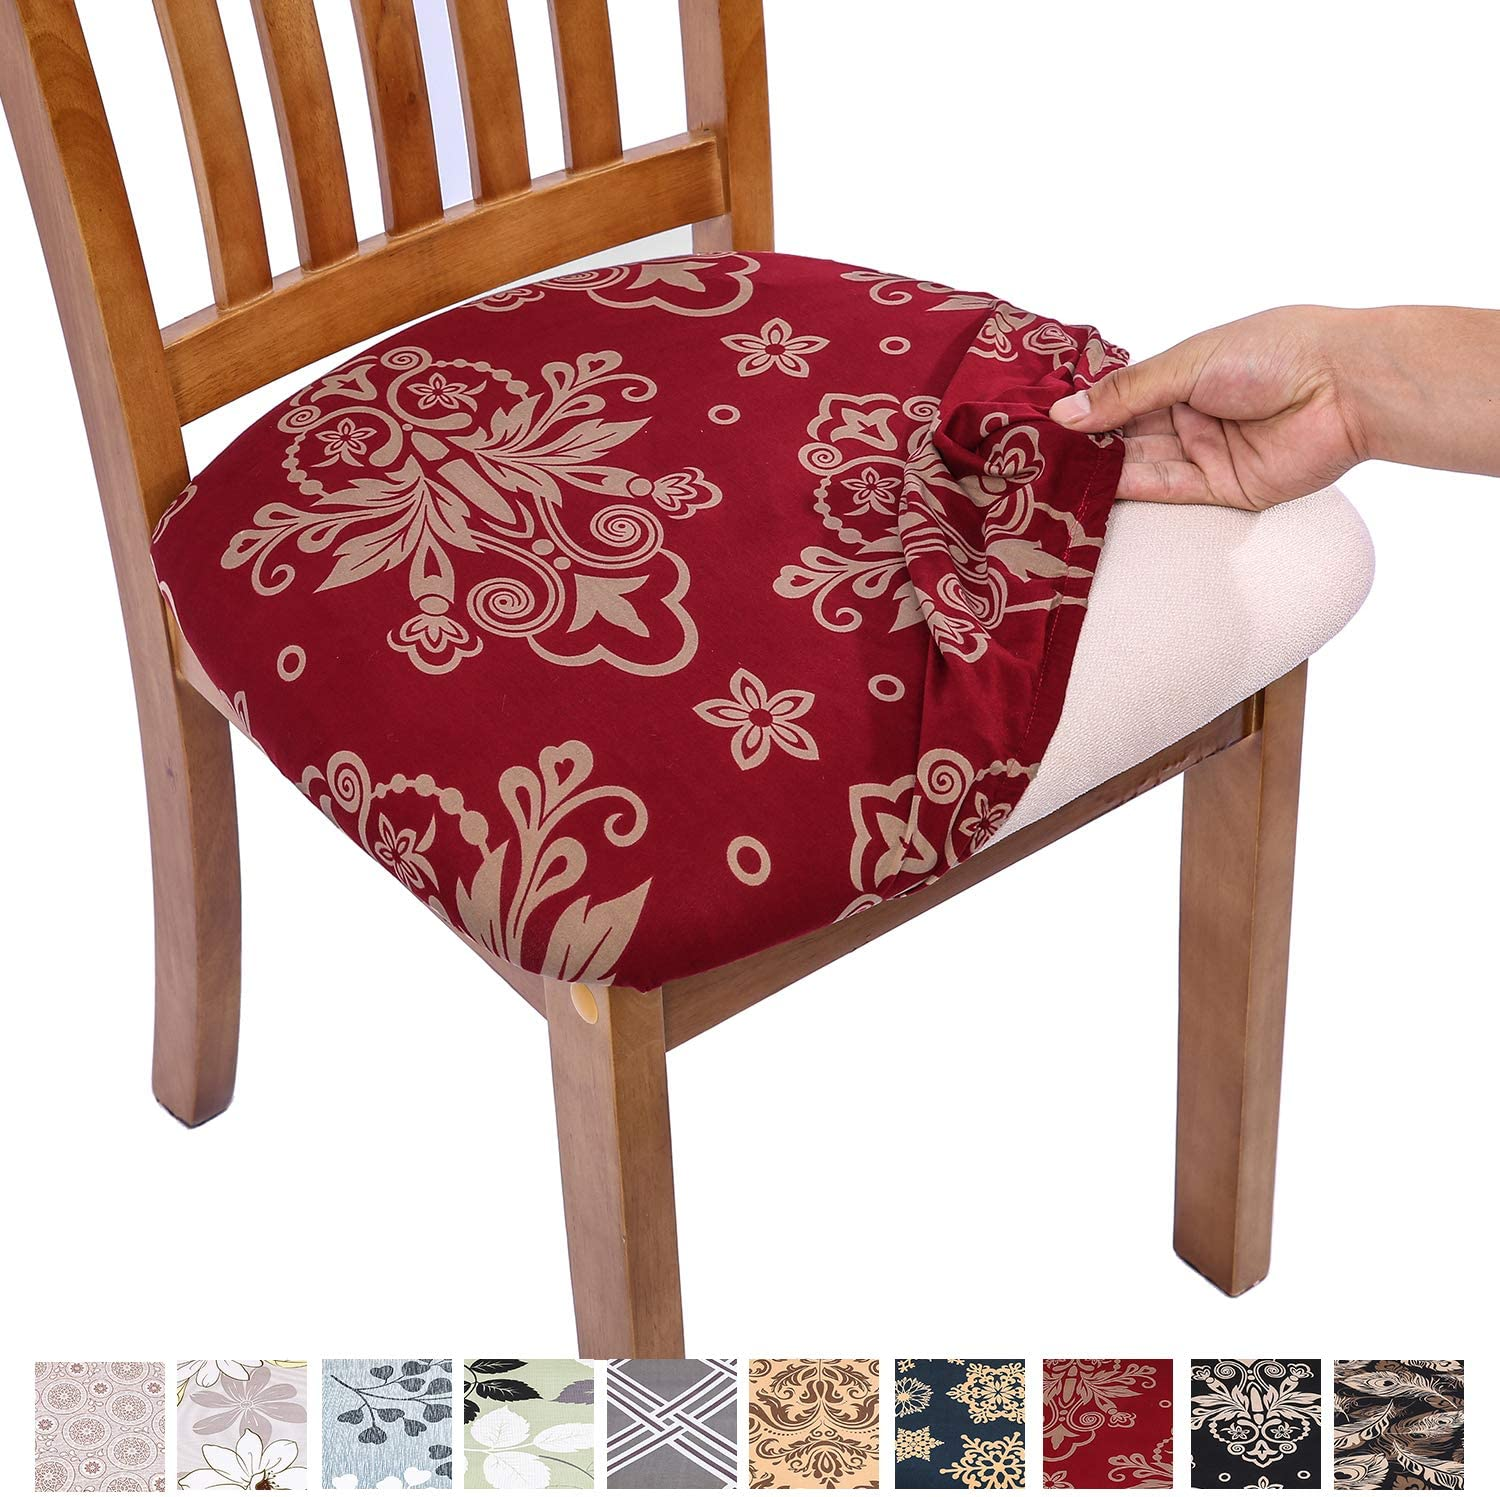 Comqualife Stretch Printed Dining Chair Seat Covers, Removable Washable  Anti-Dust Upholstered Chair Seat Cover for Dining Room, Kitchen, Office  (Set